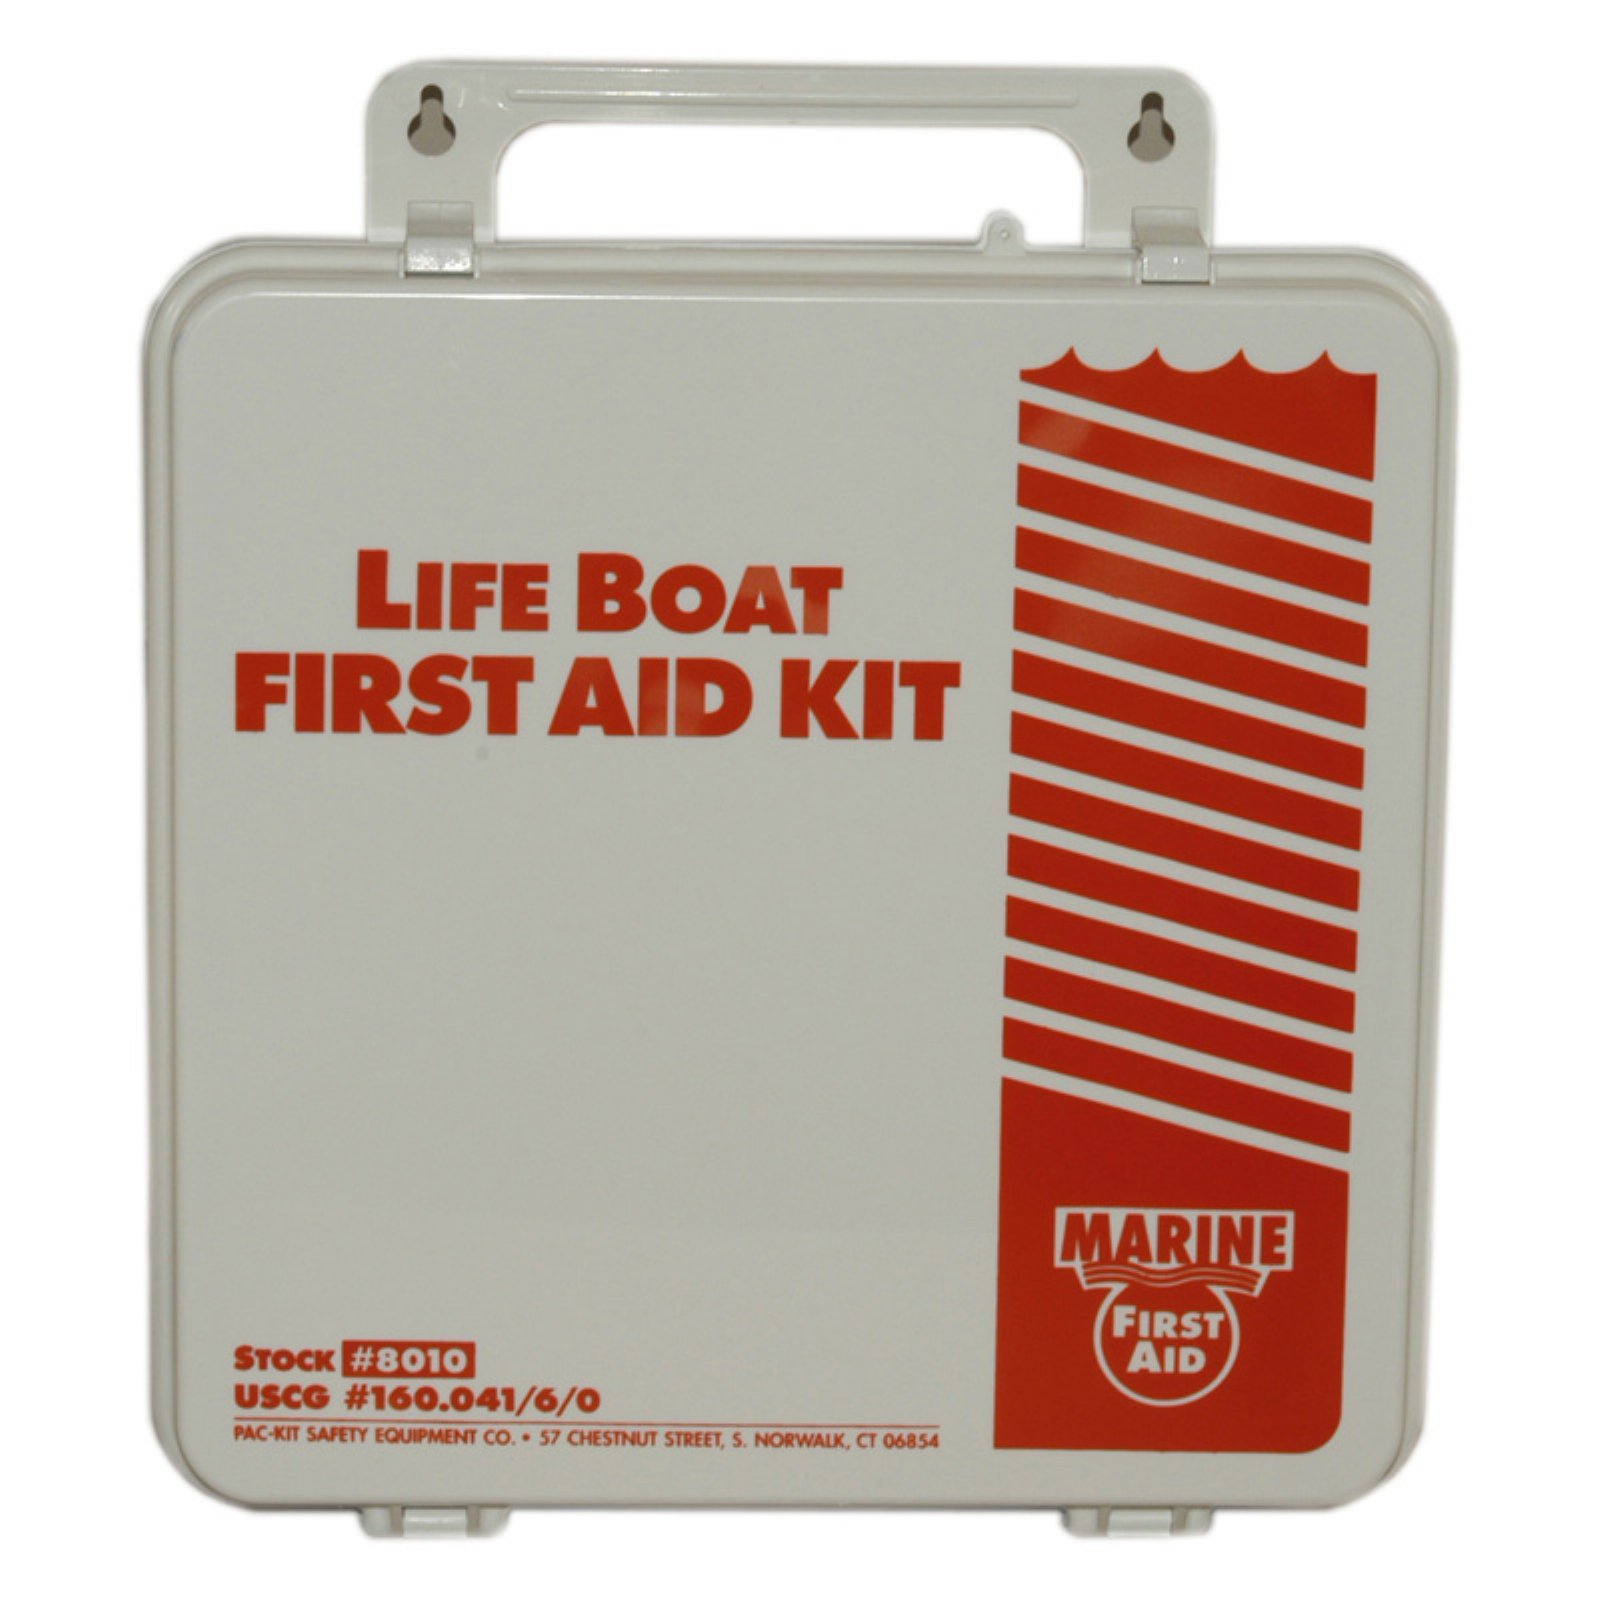 Pac-Kit Weatherproof Life Boat First Aid Kit